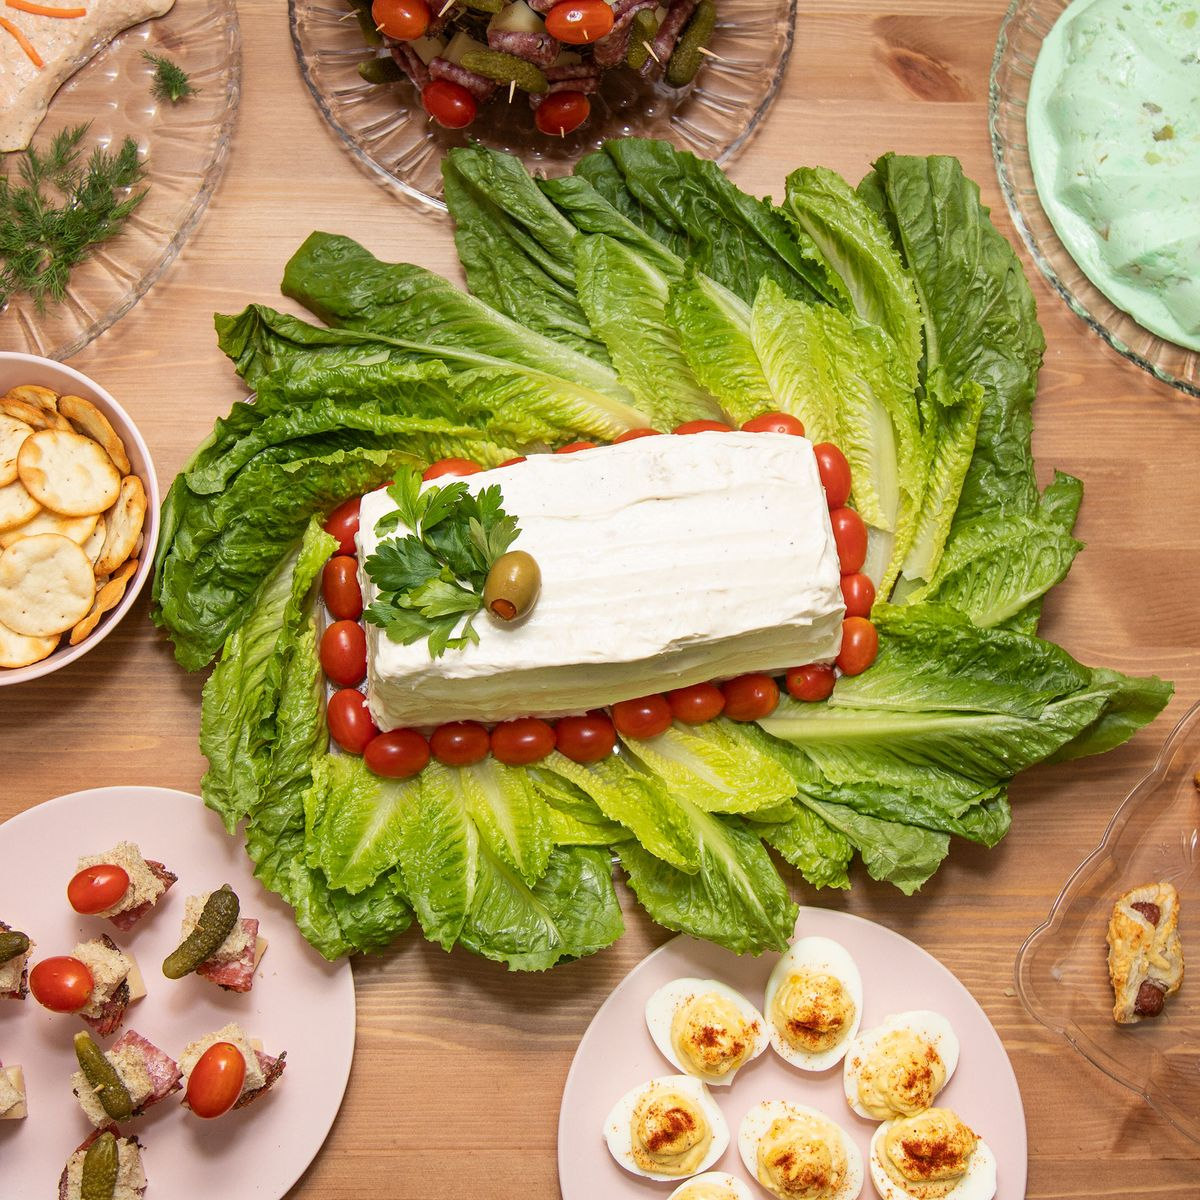 I Hosted a '70s Dinner With Salmon Mousse and Jell-O Salad